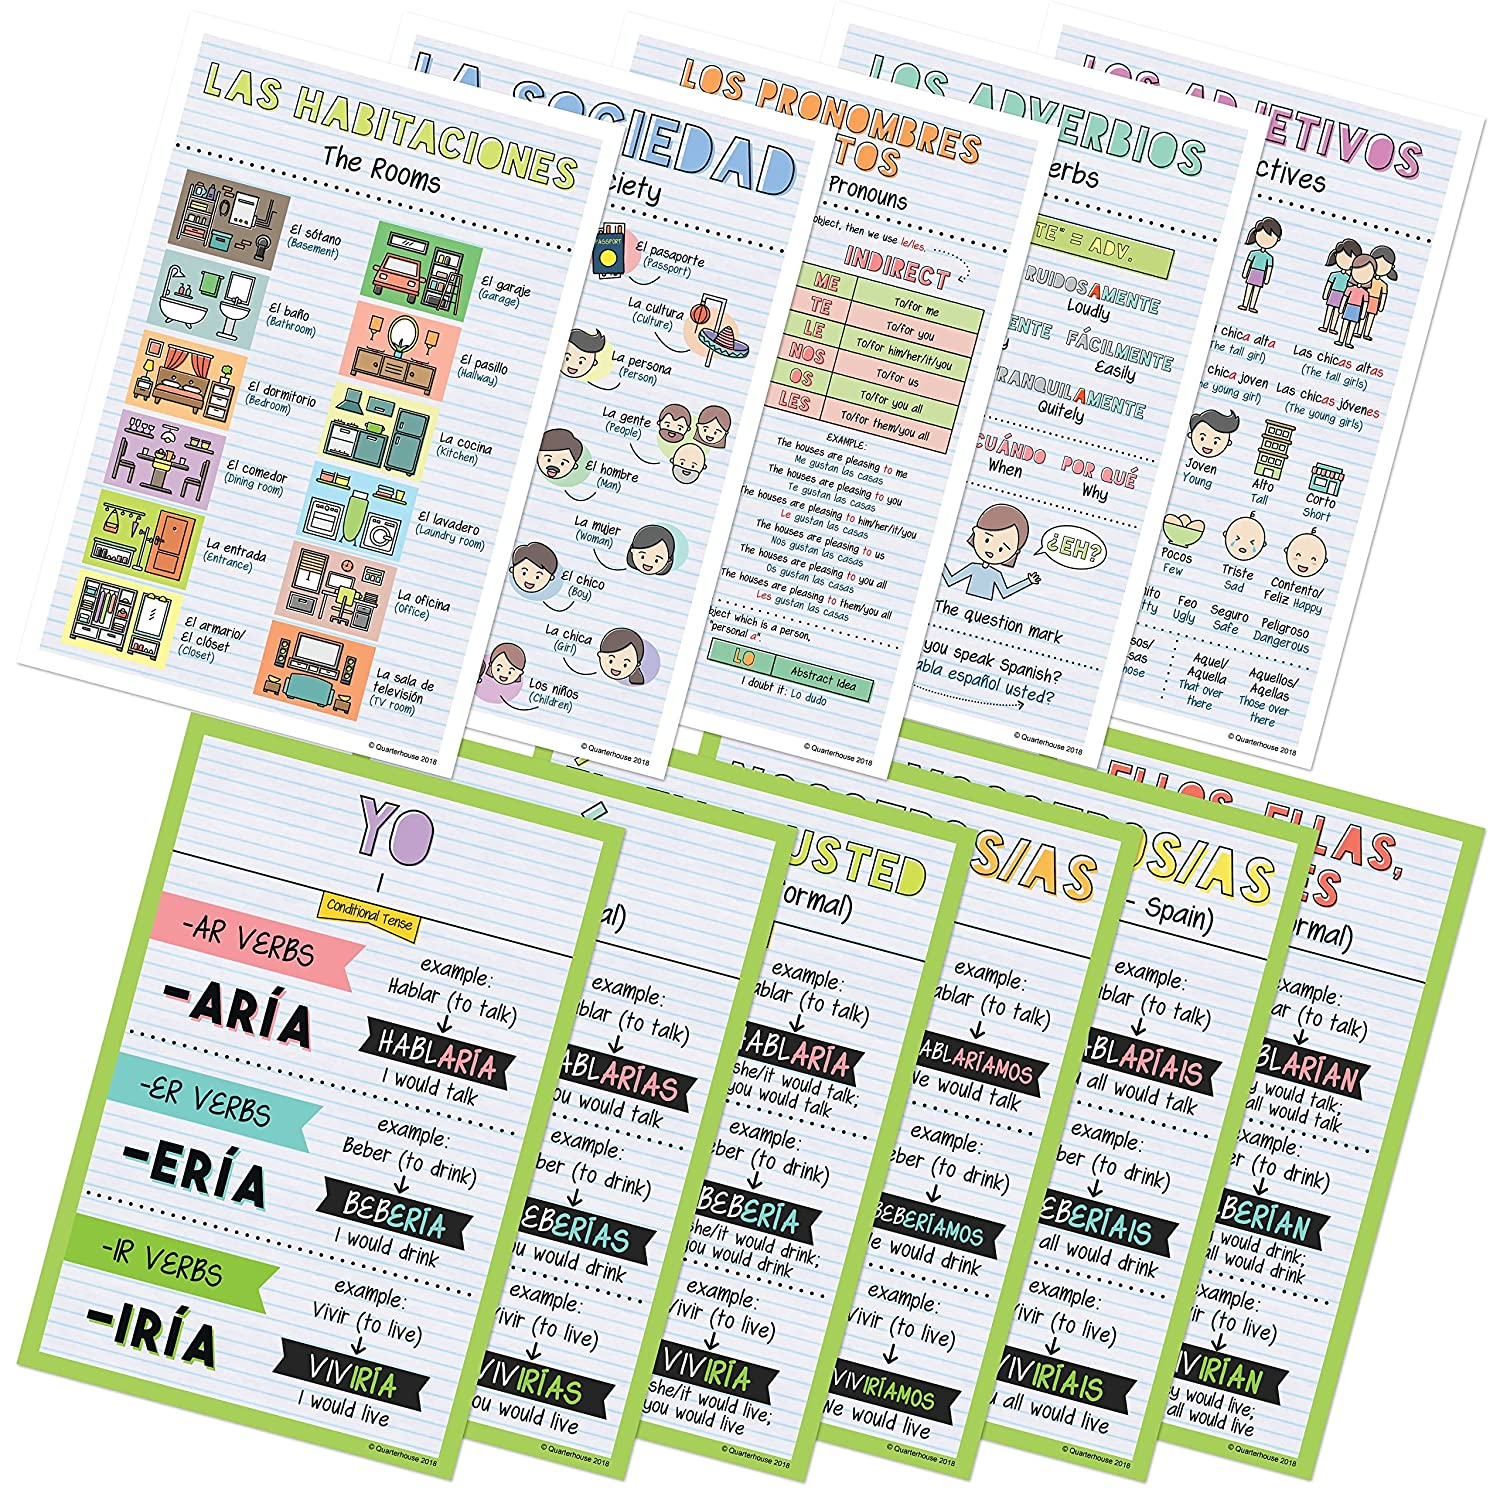 Spanish Verbs & Beginner Vocabulary Classroom Variety Posters, Set of 11, 12 x 18 inches (Set G)